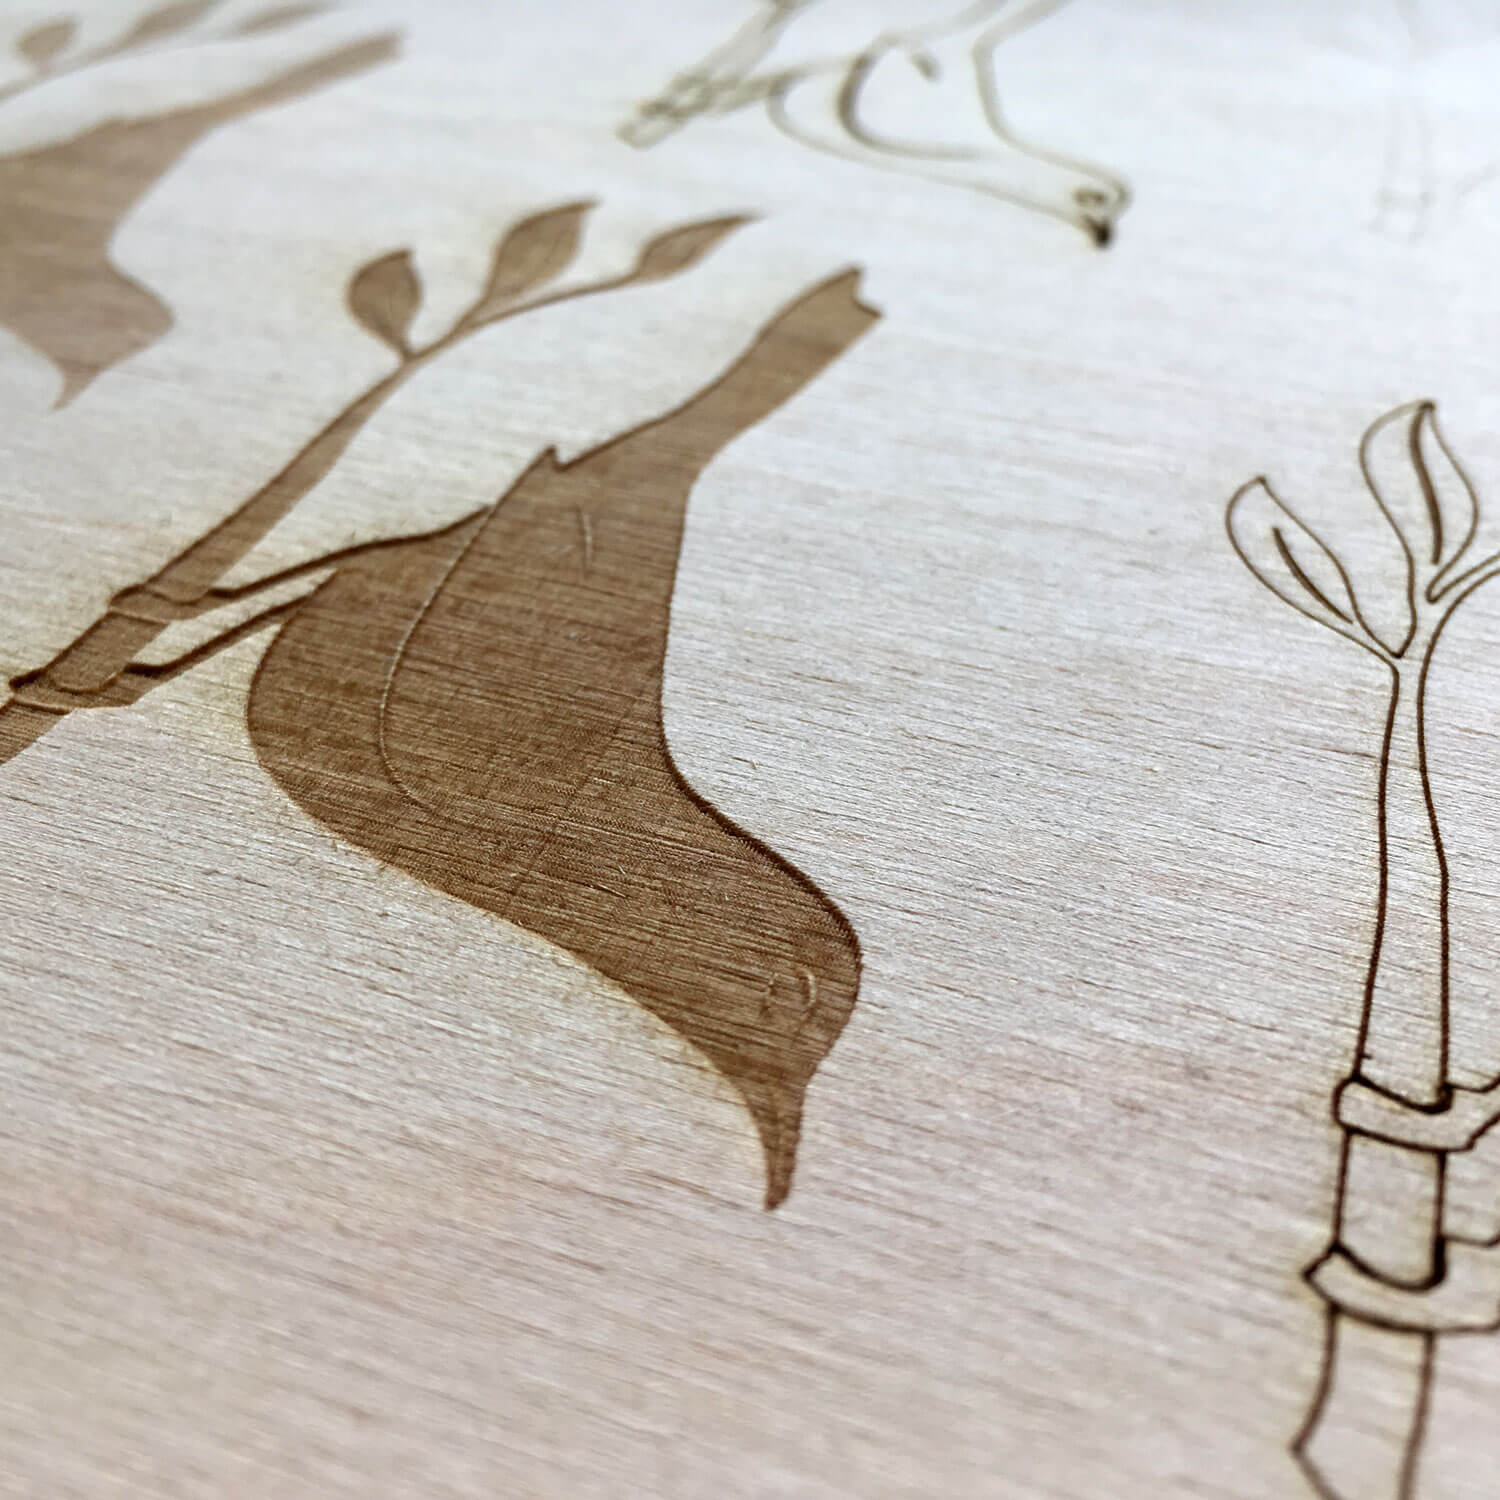 SML created custom, laser etched branded tabletops for JuneBaby of Seattle